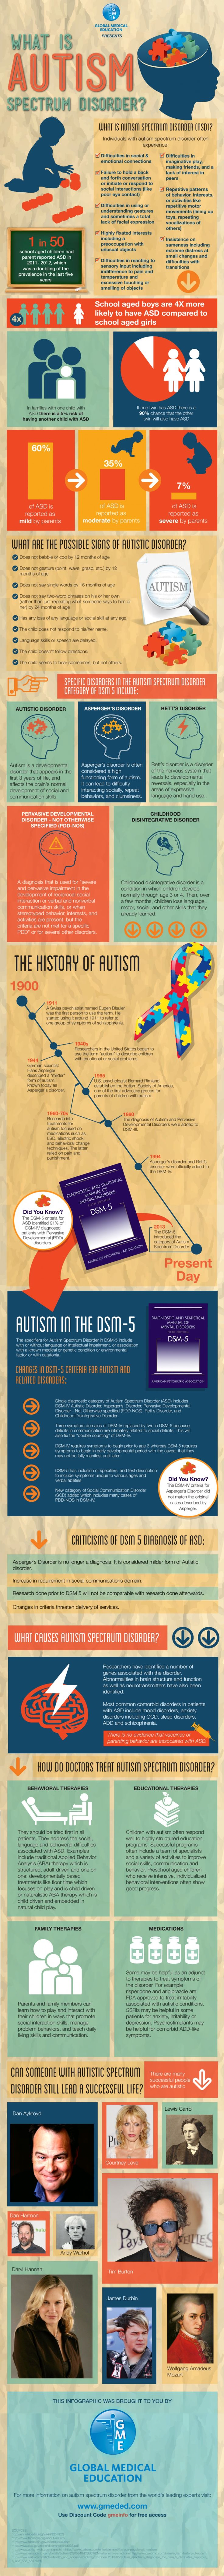 "What is Autism Spectrum Disorder (ASD)? It is rather ridiculous to assume the adults pictured actually have autism. And NO the vaccine connections has NOT been ruled out. In fact the studies that are cited to ""prove"" vaccines are not linked to autism have been discredited. Link here: http://www.ageofautism.com/2009/04/fourteen-studies-only-if-you-never-read-them.html"